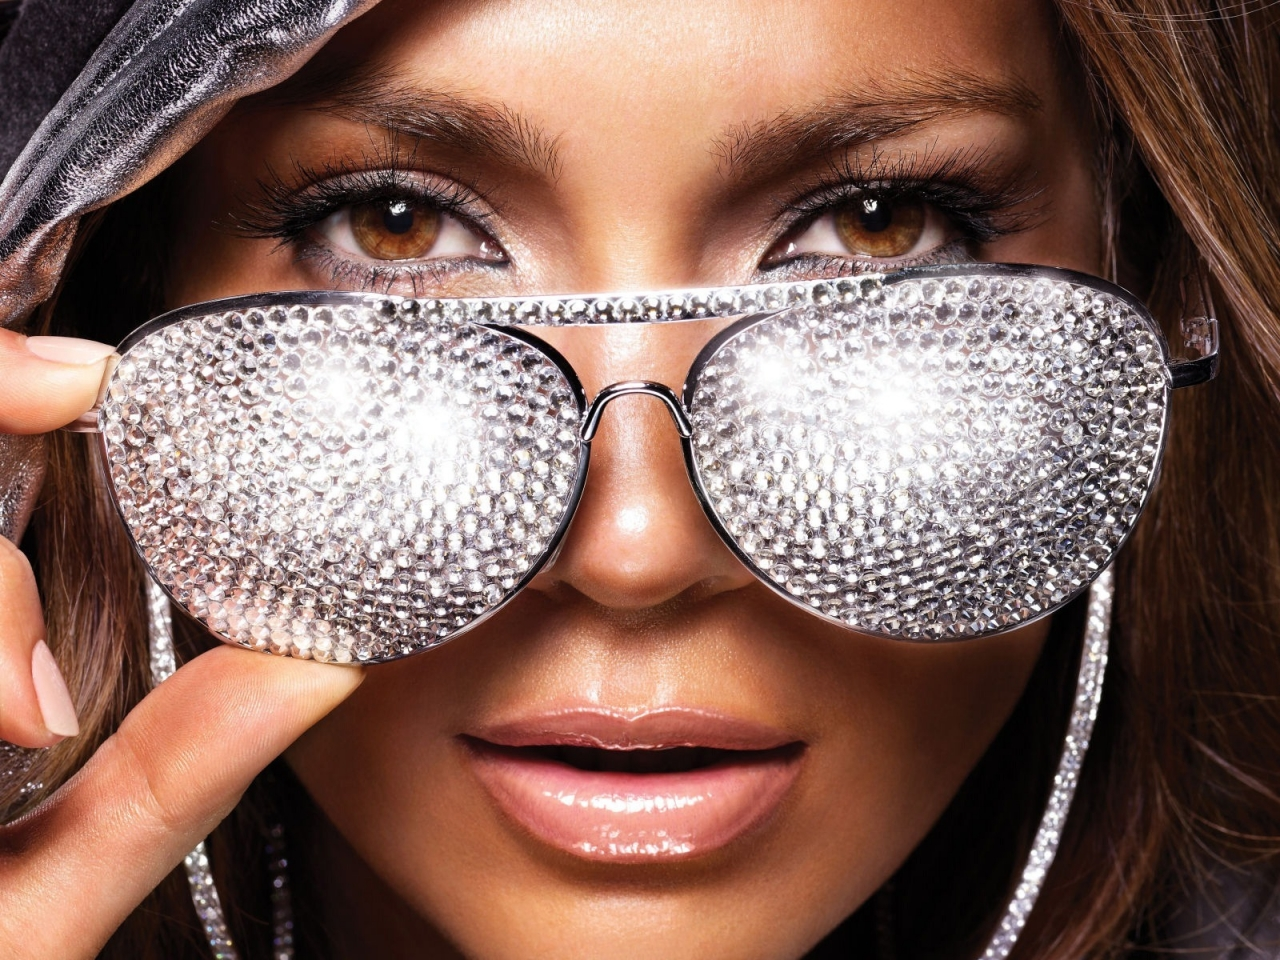 J.Lo Glasses for 1280 x 960 resolution